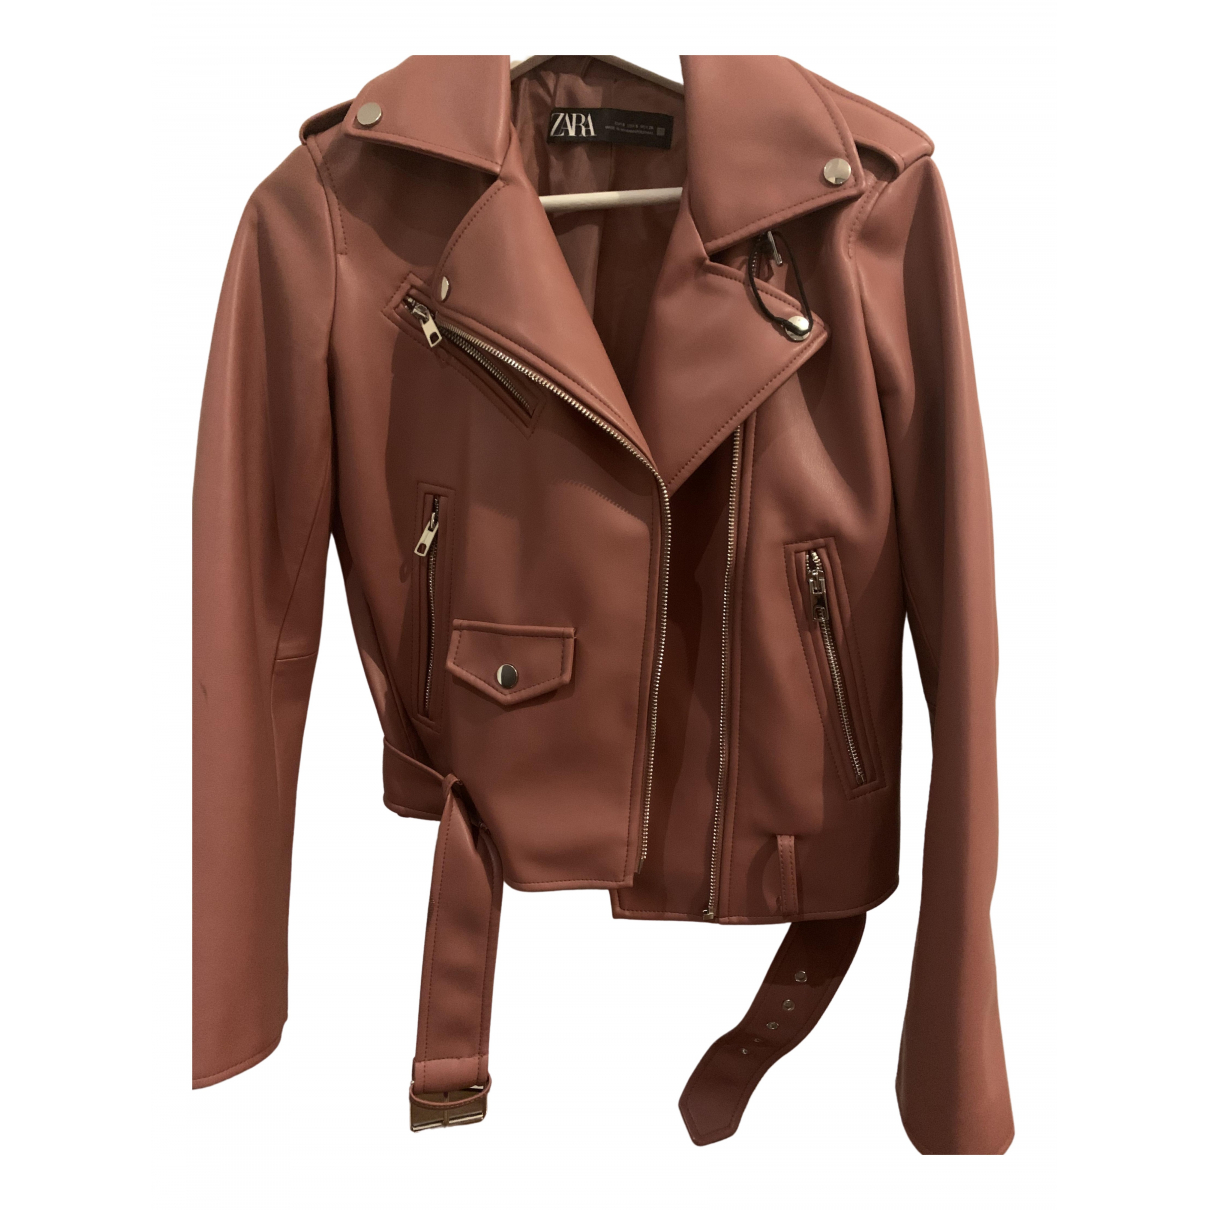 Zara \N Pink Leather Leather jacket for Women S International